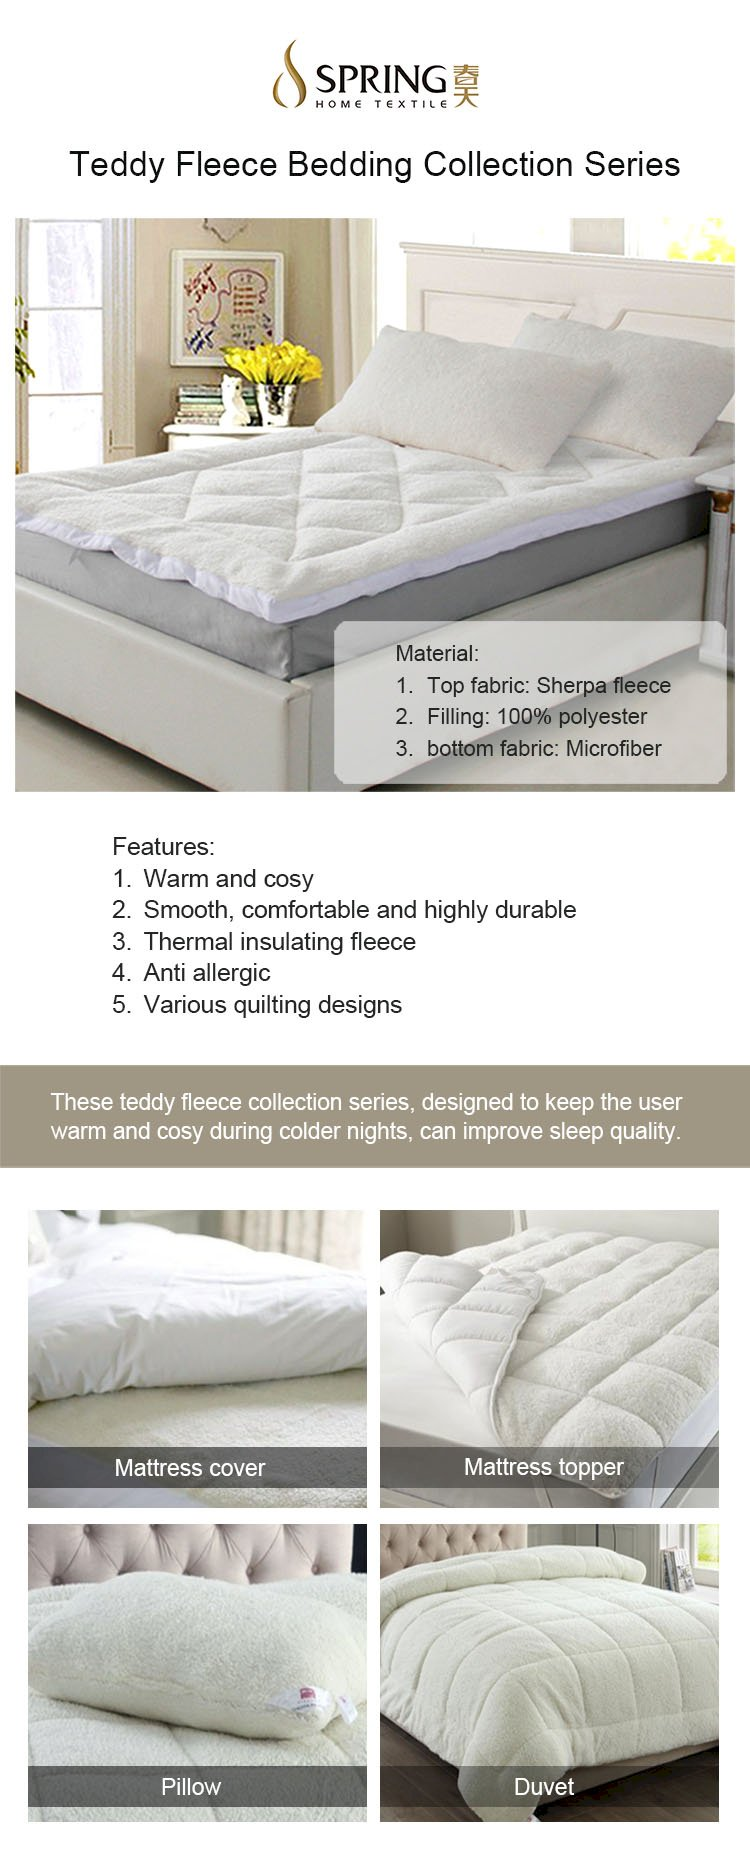 Why Choose Teddy Bear Bedding?